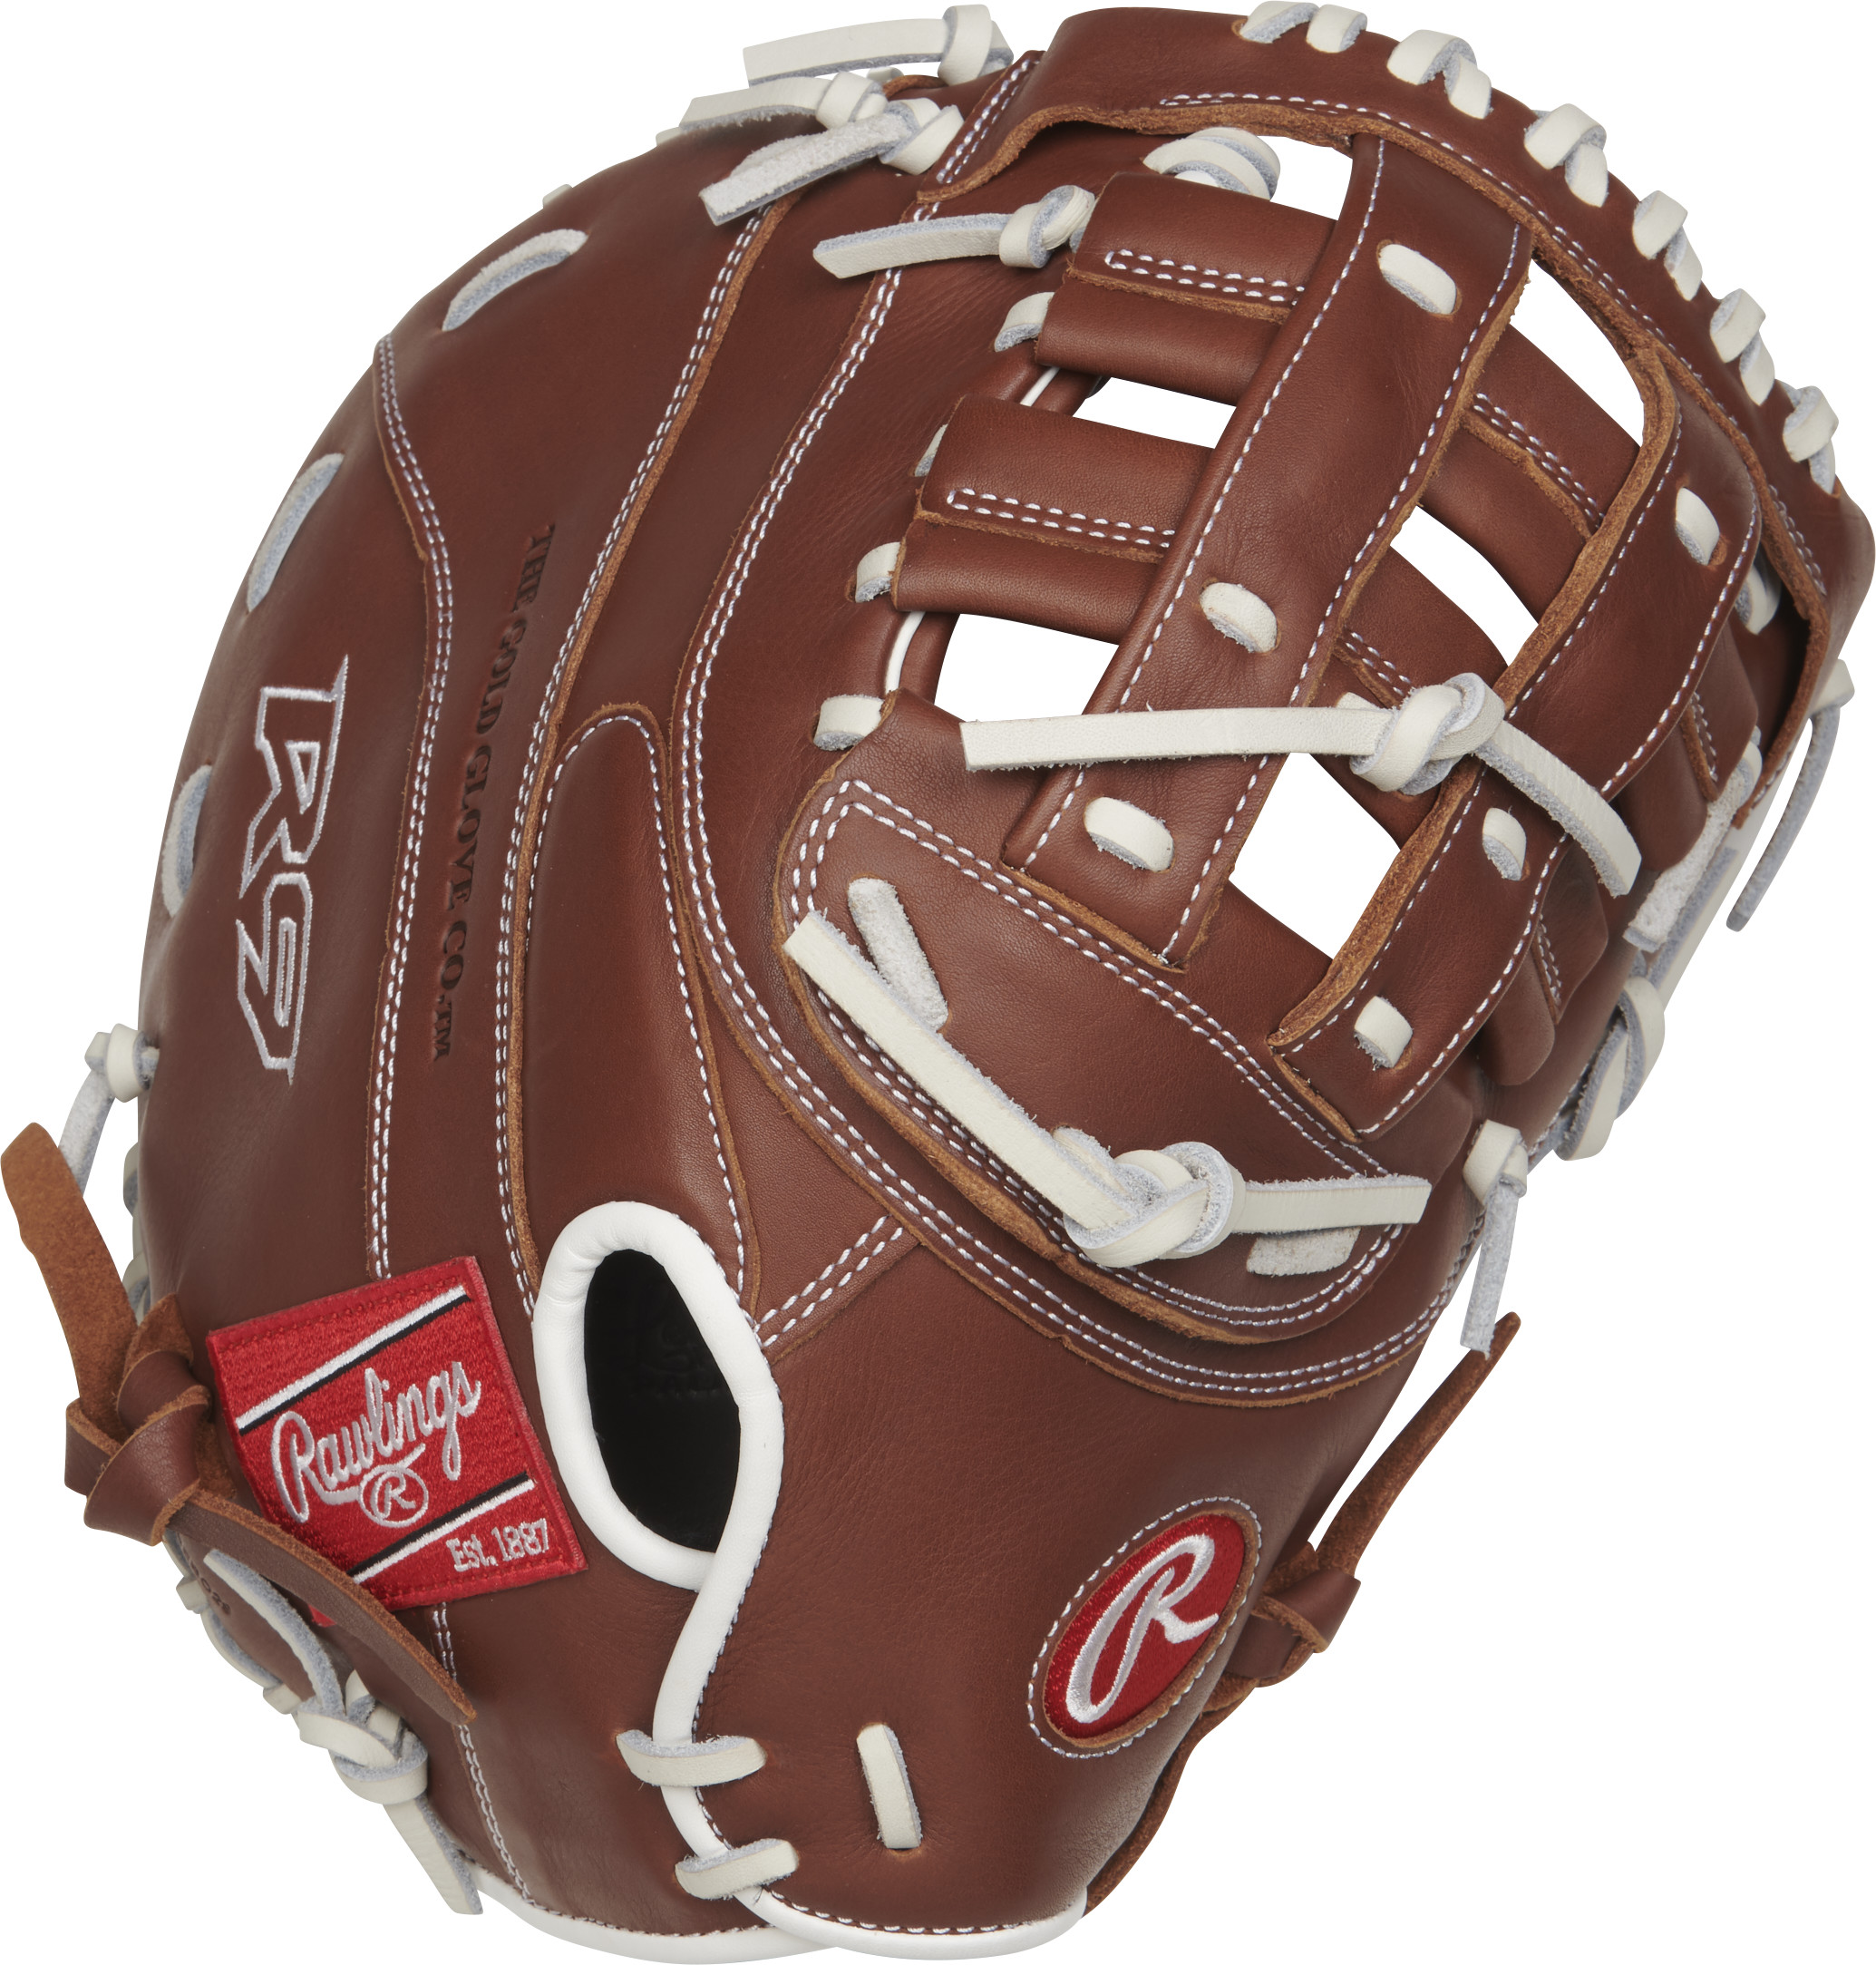 http://www.bestbatdeals.com/images/gloves/rawlings/R9SBFBM-17DB-2.jpg